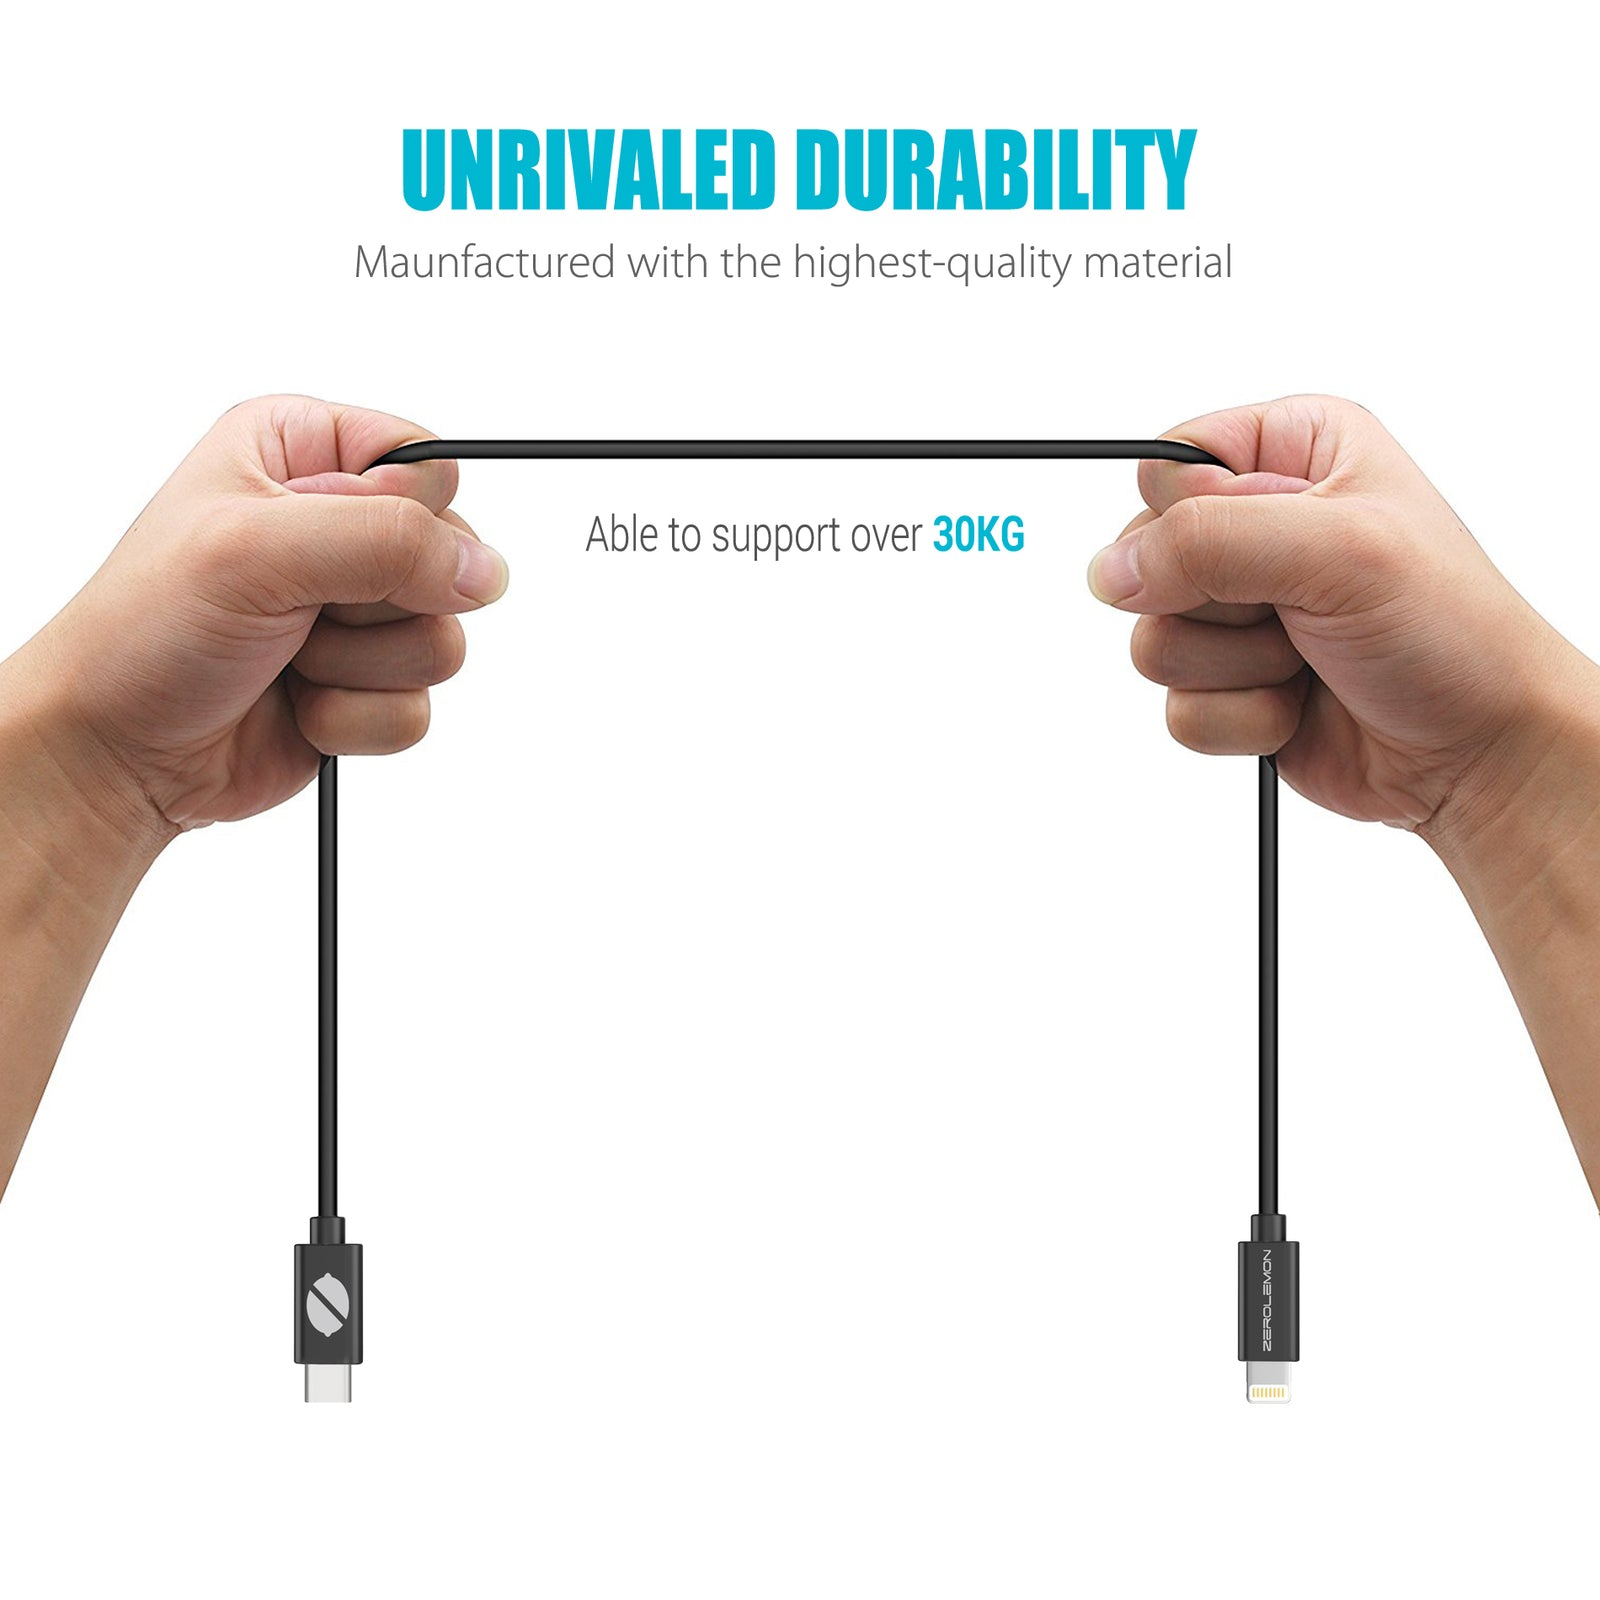 USB-C PD to Lightning Cable [Apple Mfi Certified] - 1Pack [Shipping to US Only]